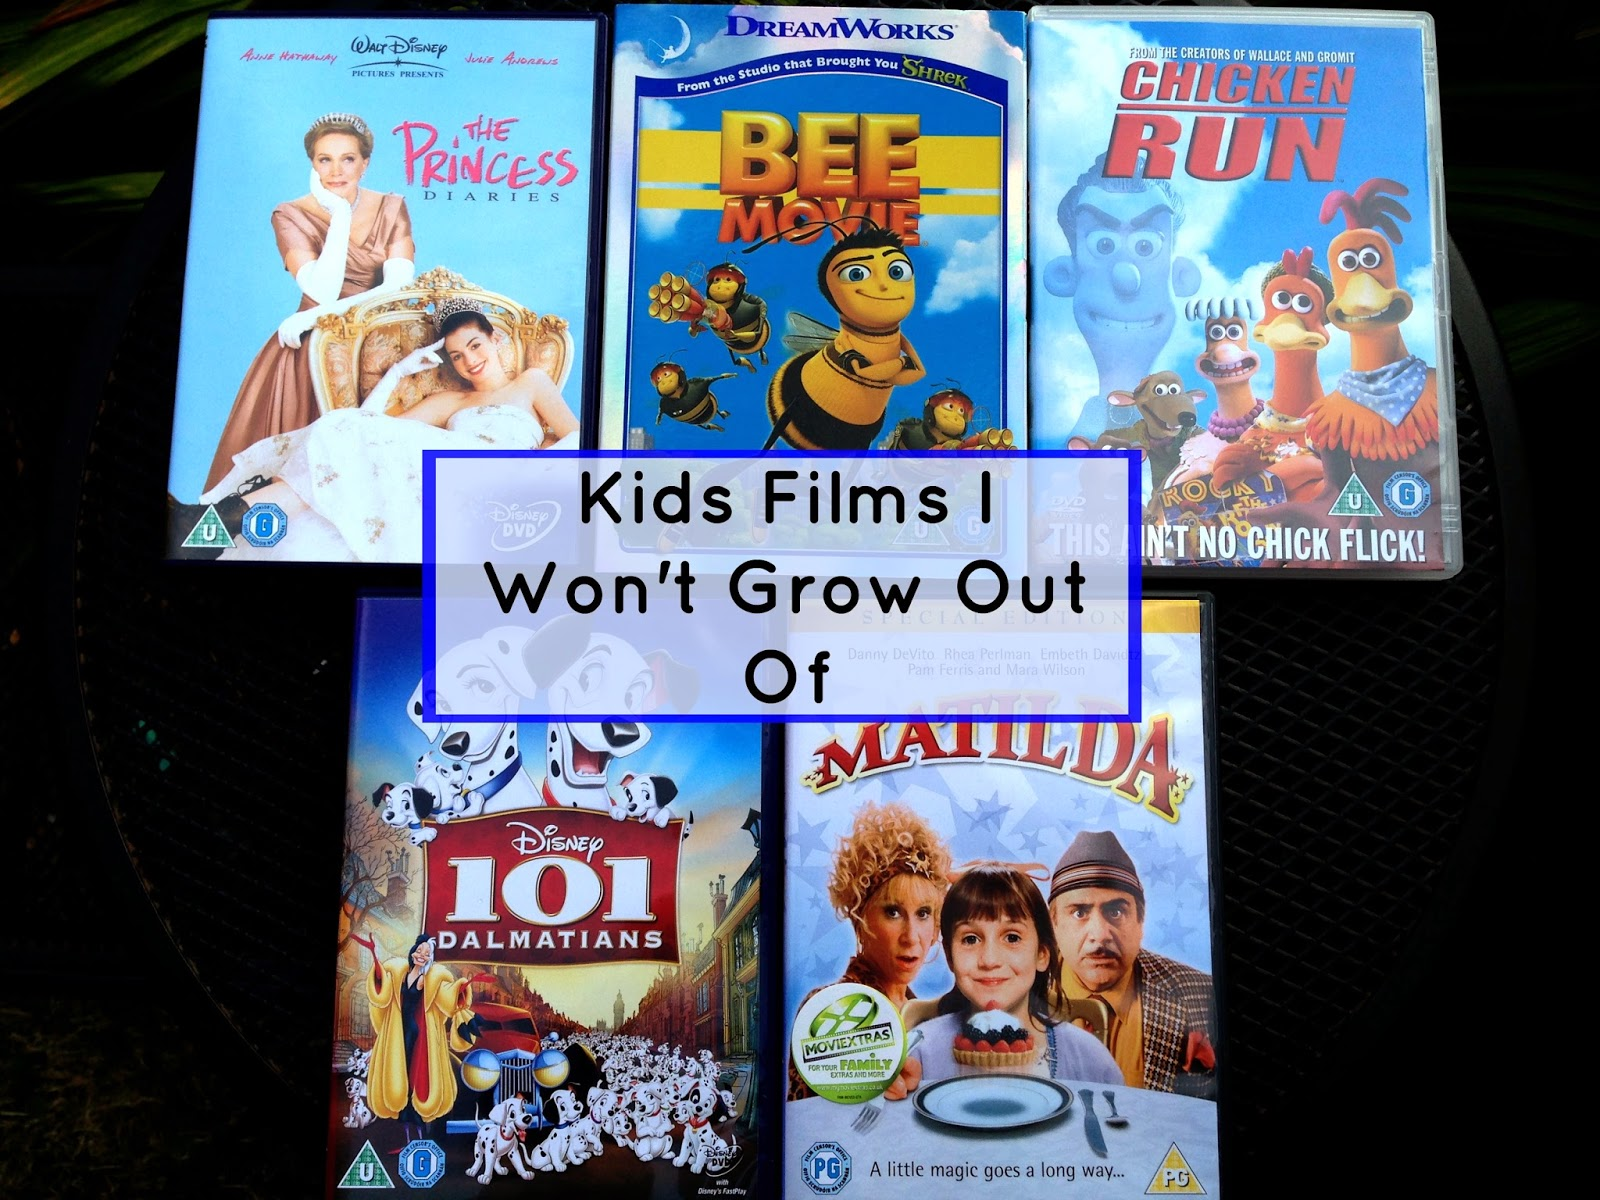 Films I Won't Grow Out Of- The Princess Diaries, Bee Movie, Chicken Run, 101 Dalmatians, Matilda